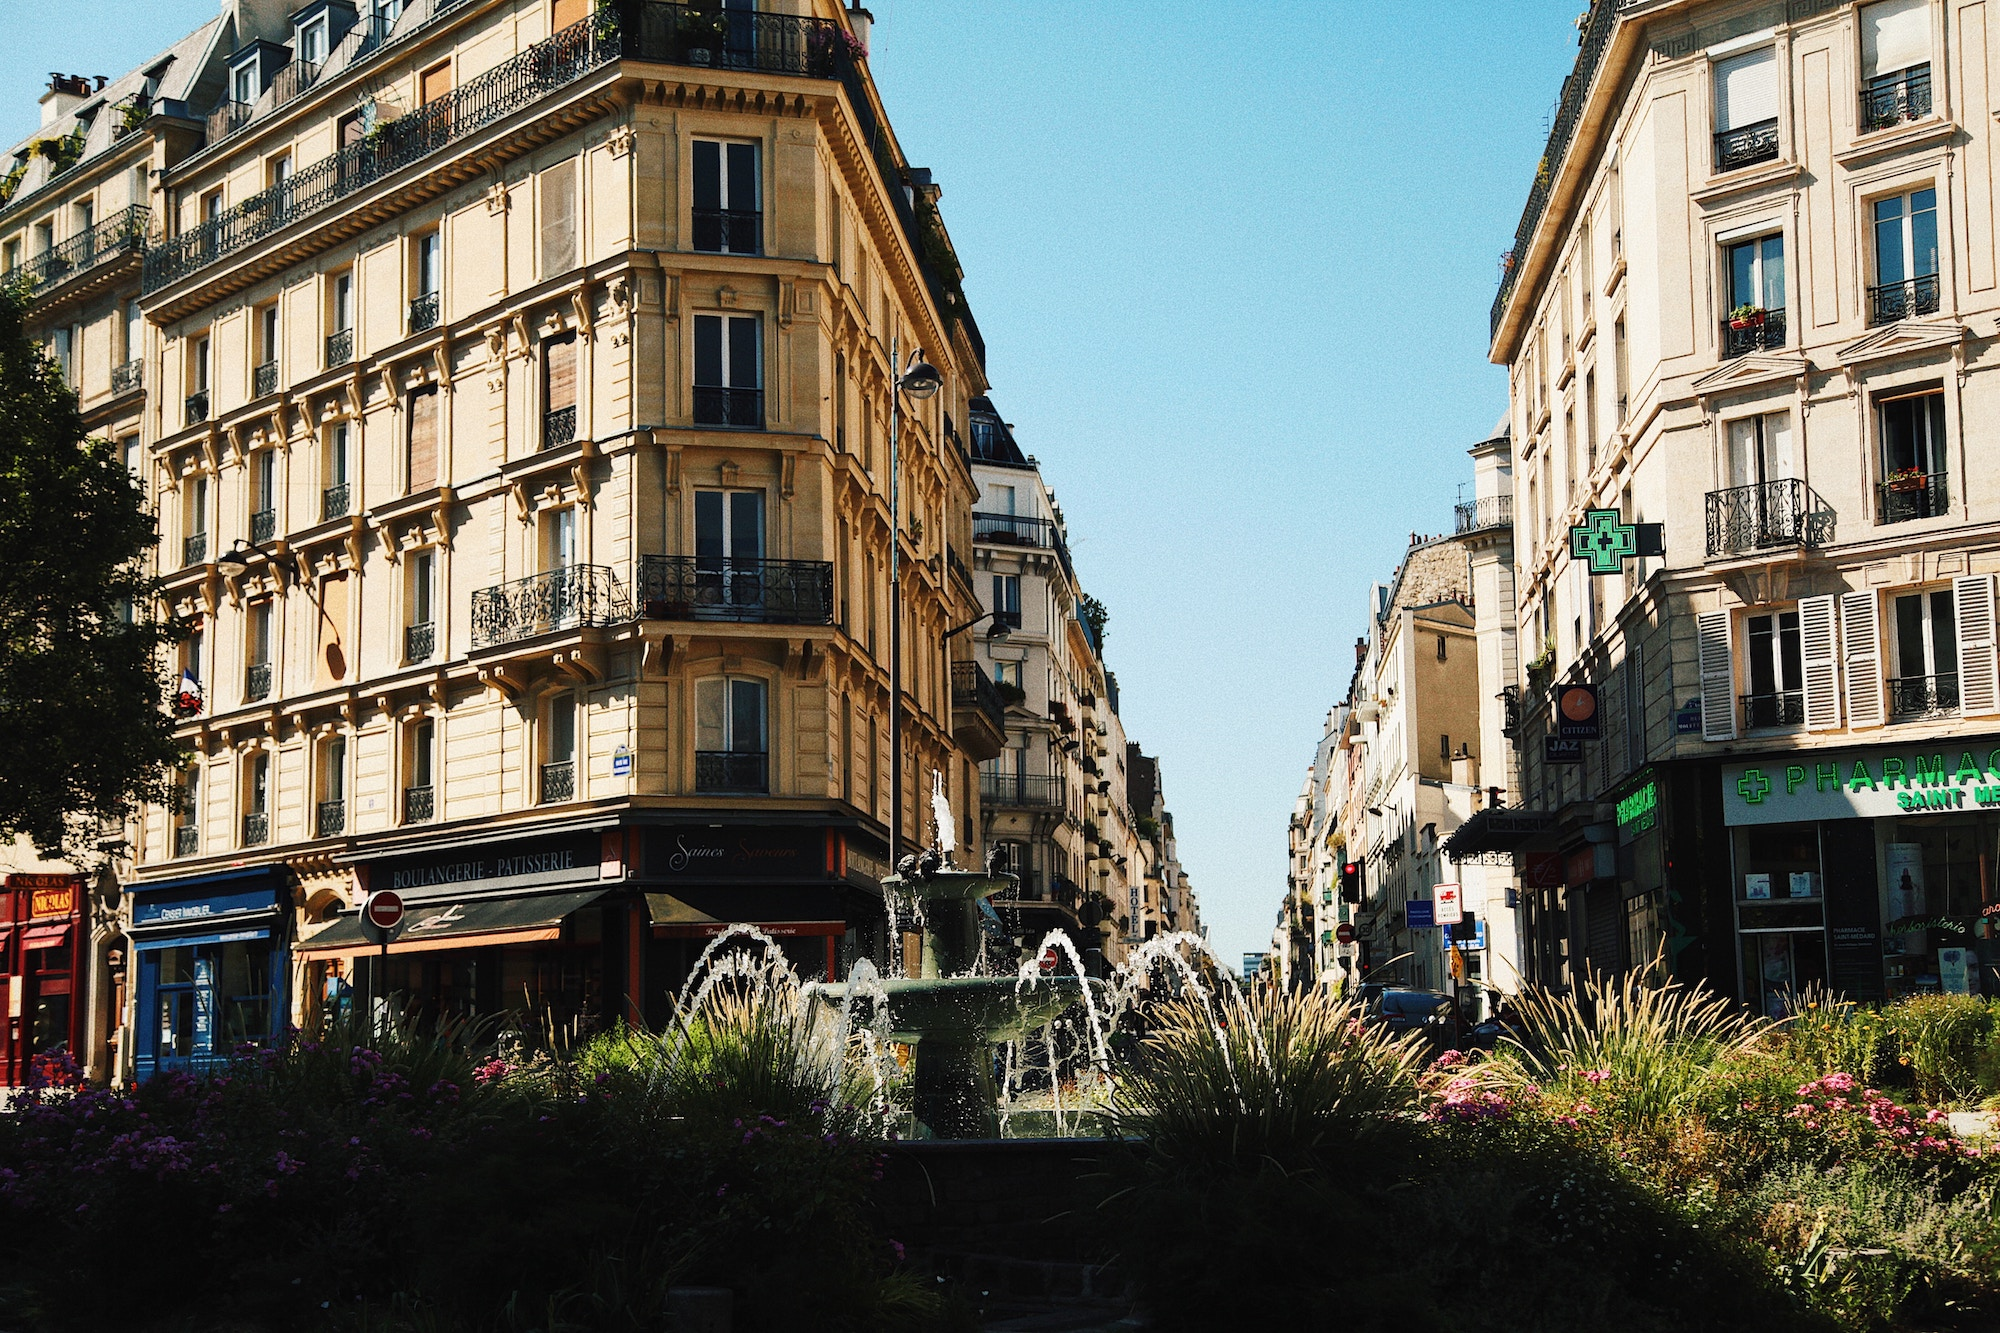 On a bright, sunny day, a fountain trickles in a Parisian square as the apartment buildings are bathed in sunlight.